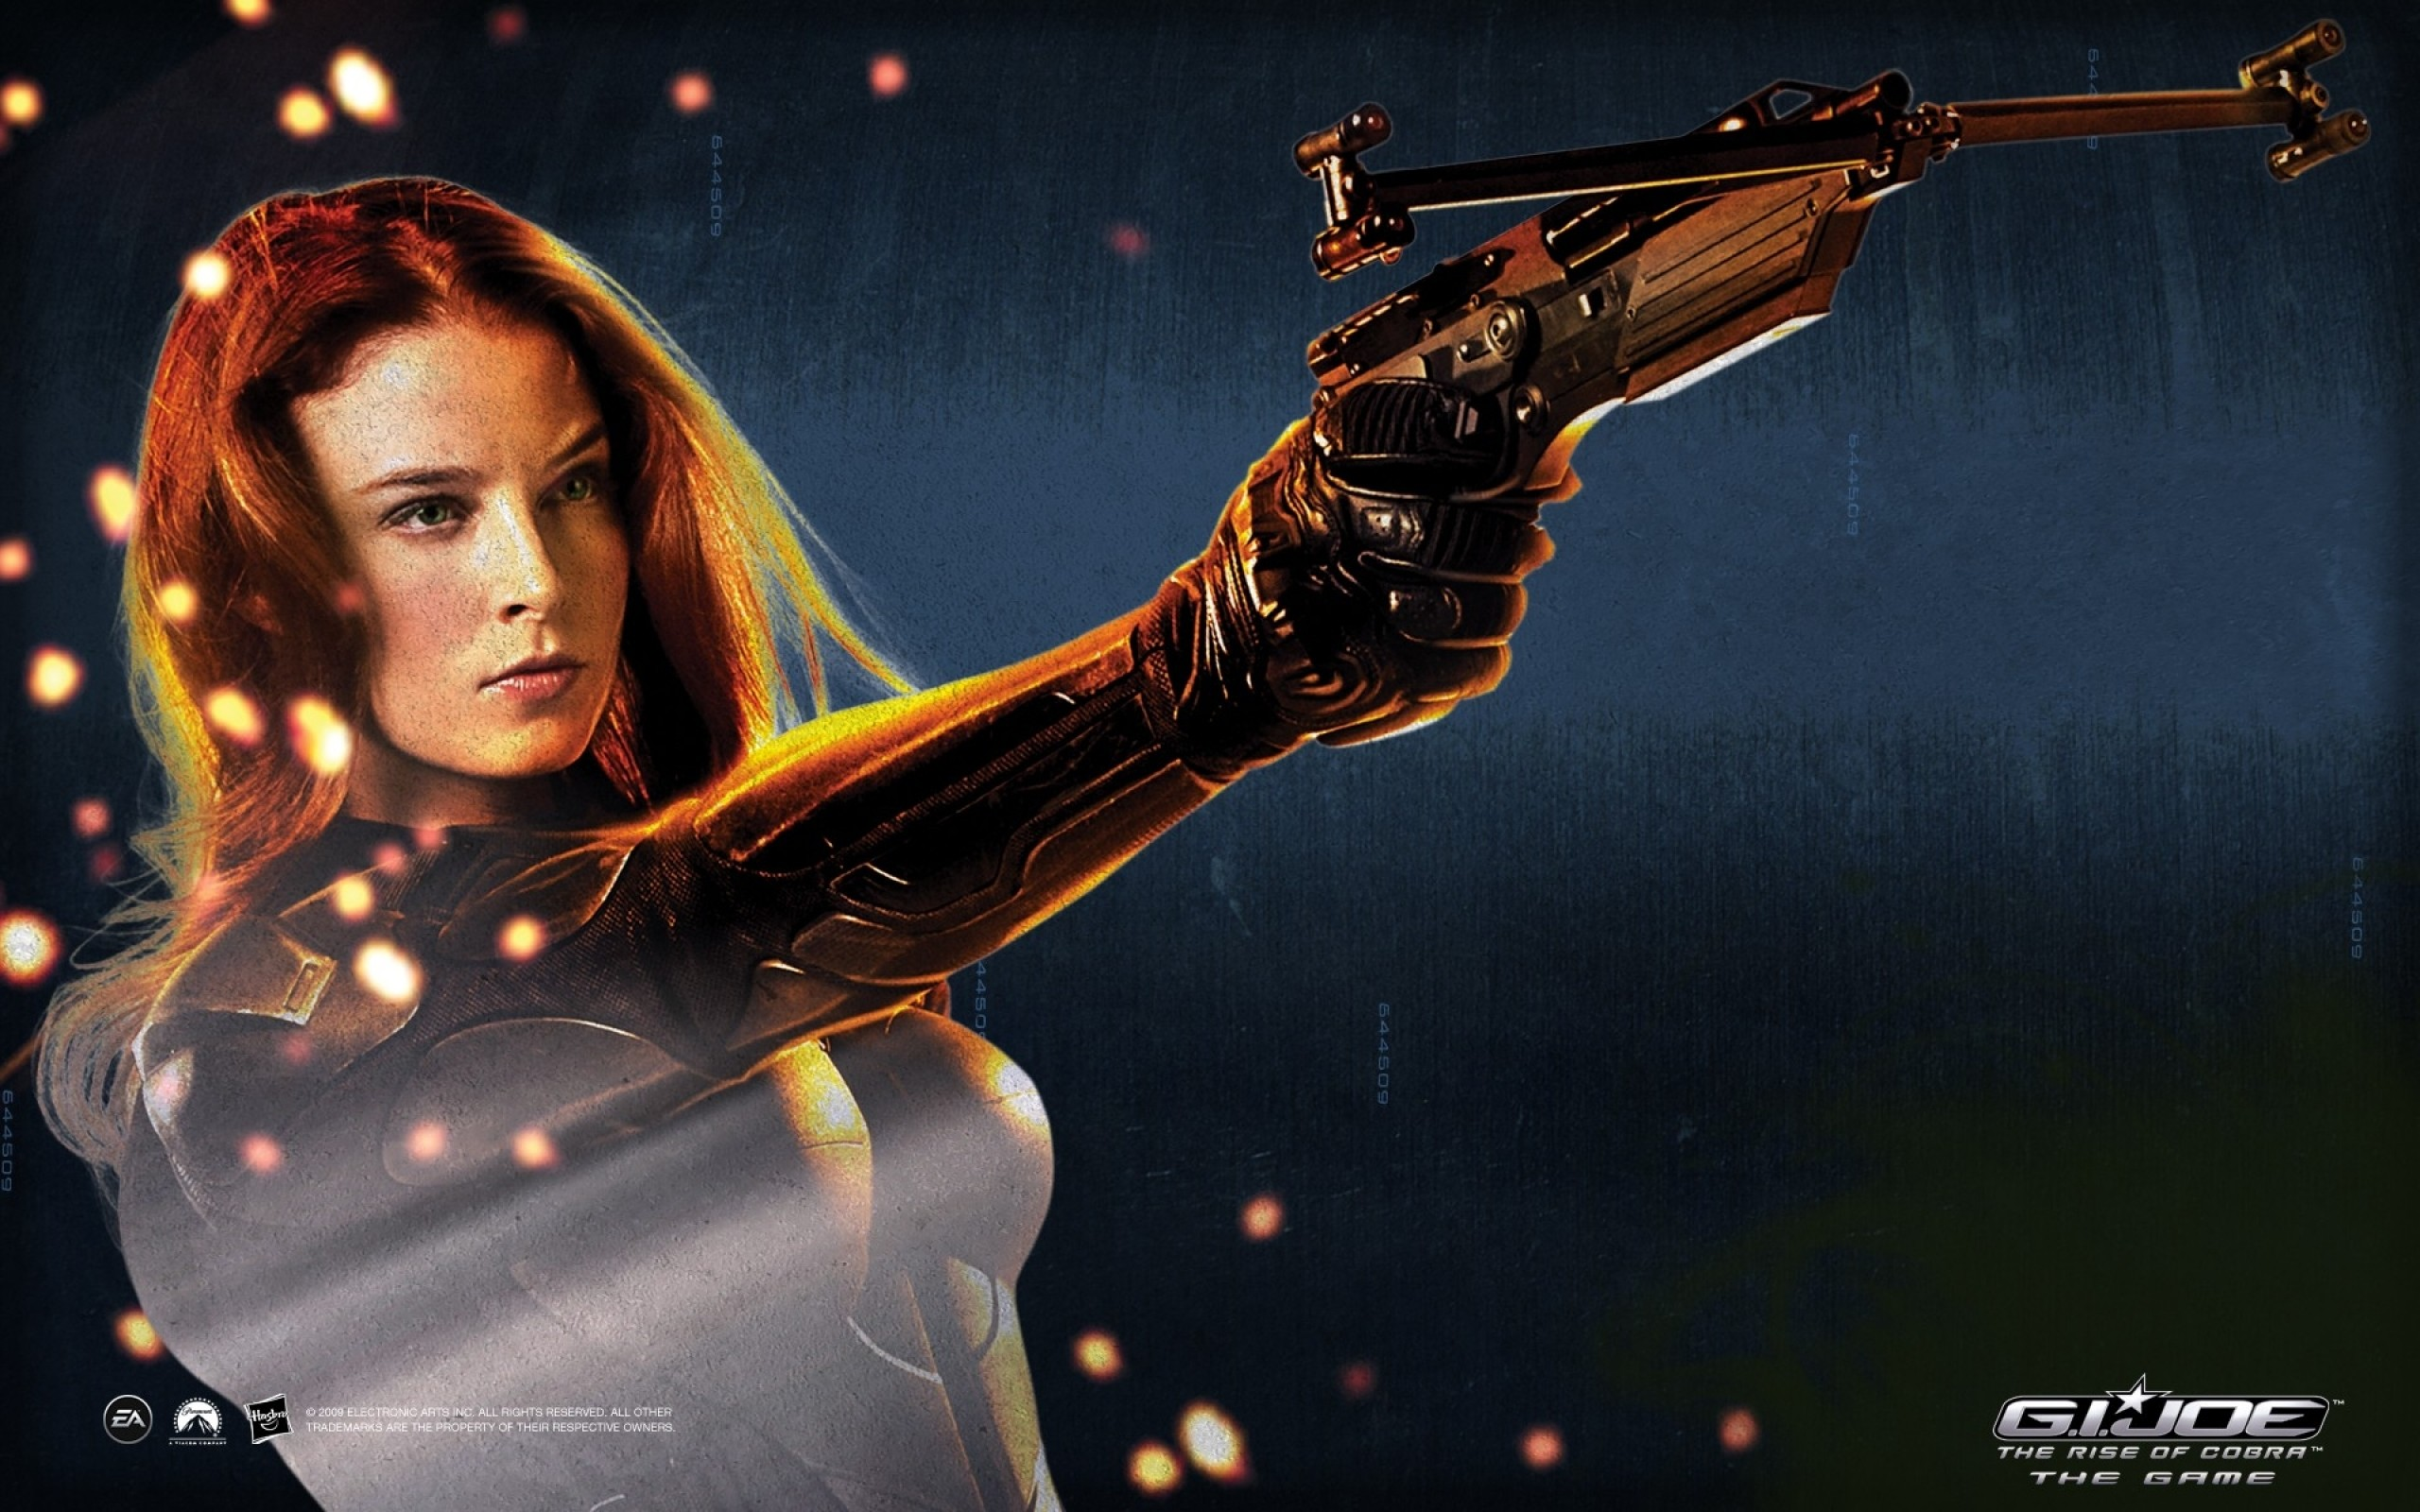 2560x1600 video games scarlett rachel nichols sparks gi joe 1920x1200 wallpaper Art  HD Wallpaper